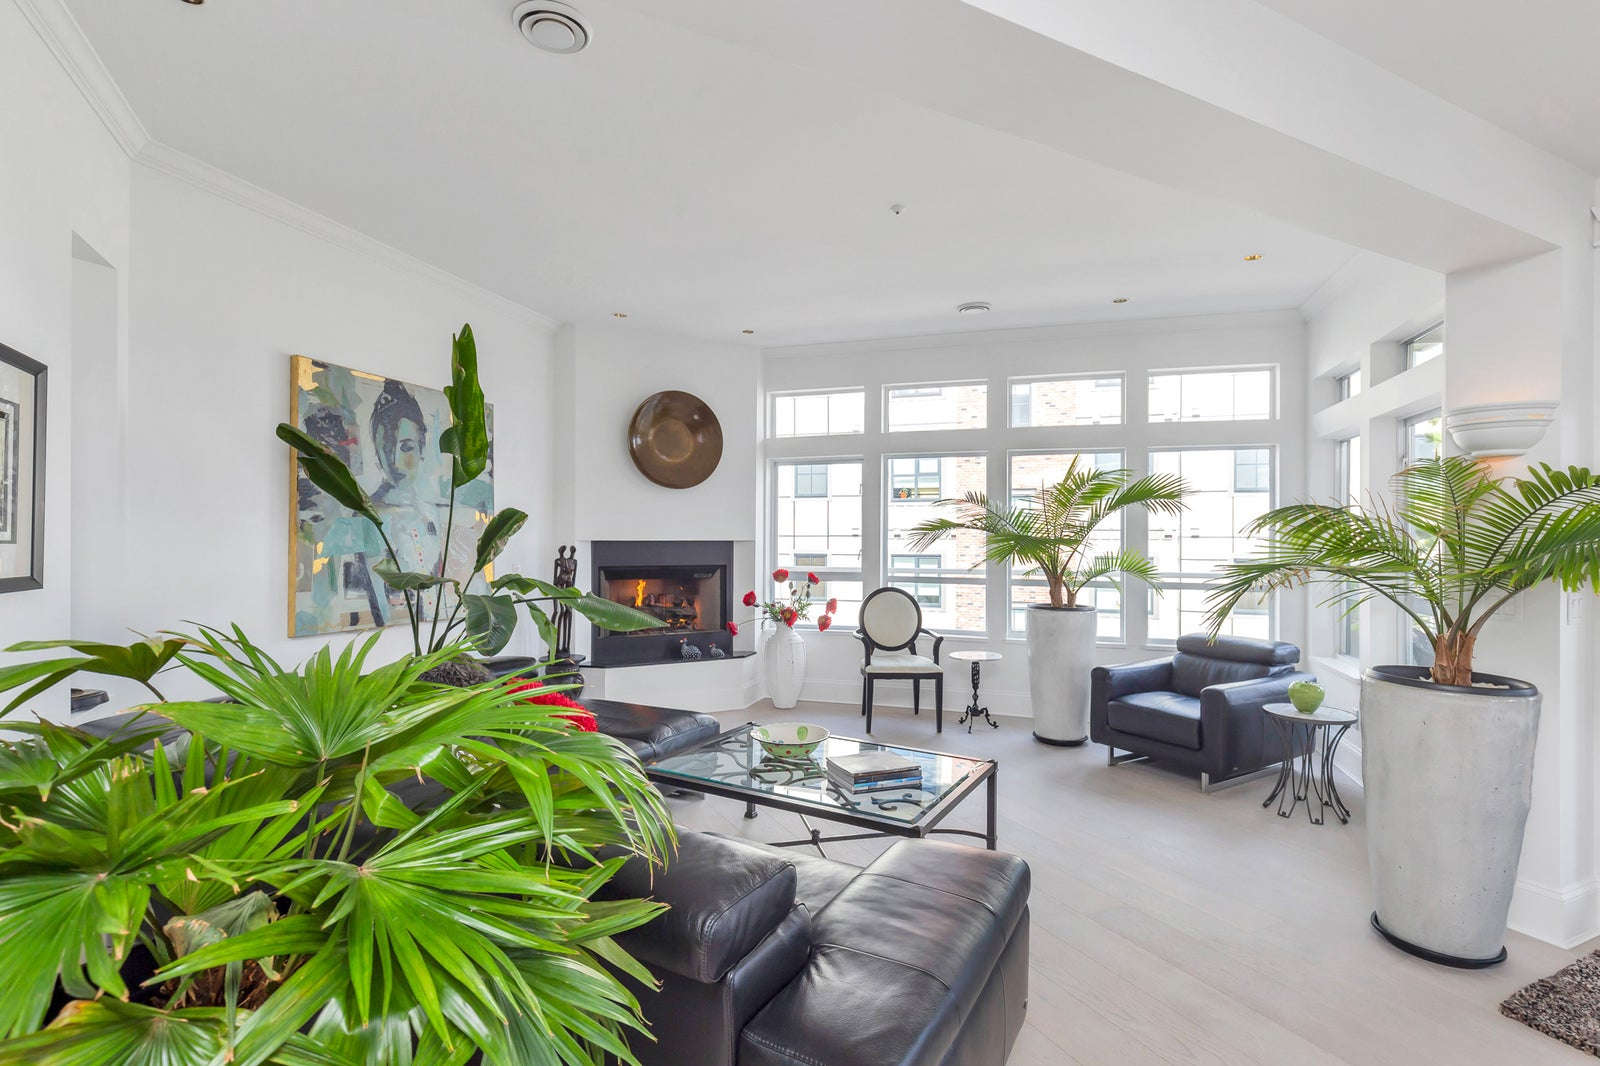 Penthouse in Langley